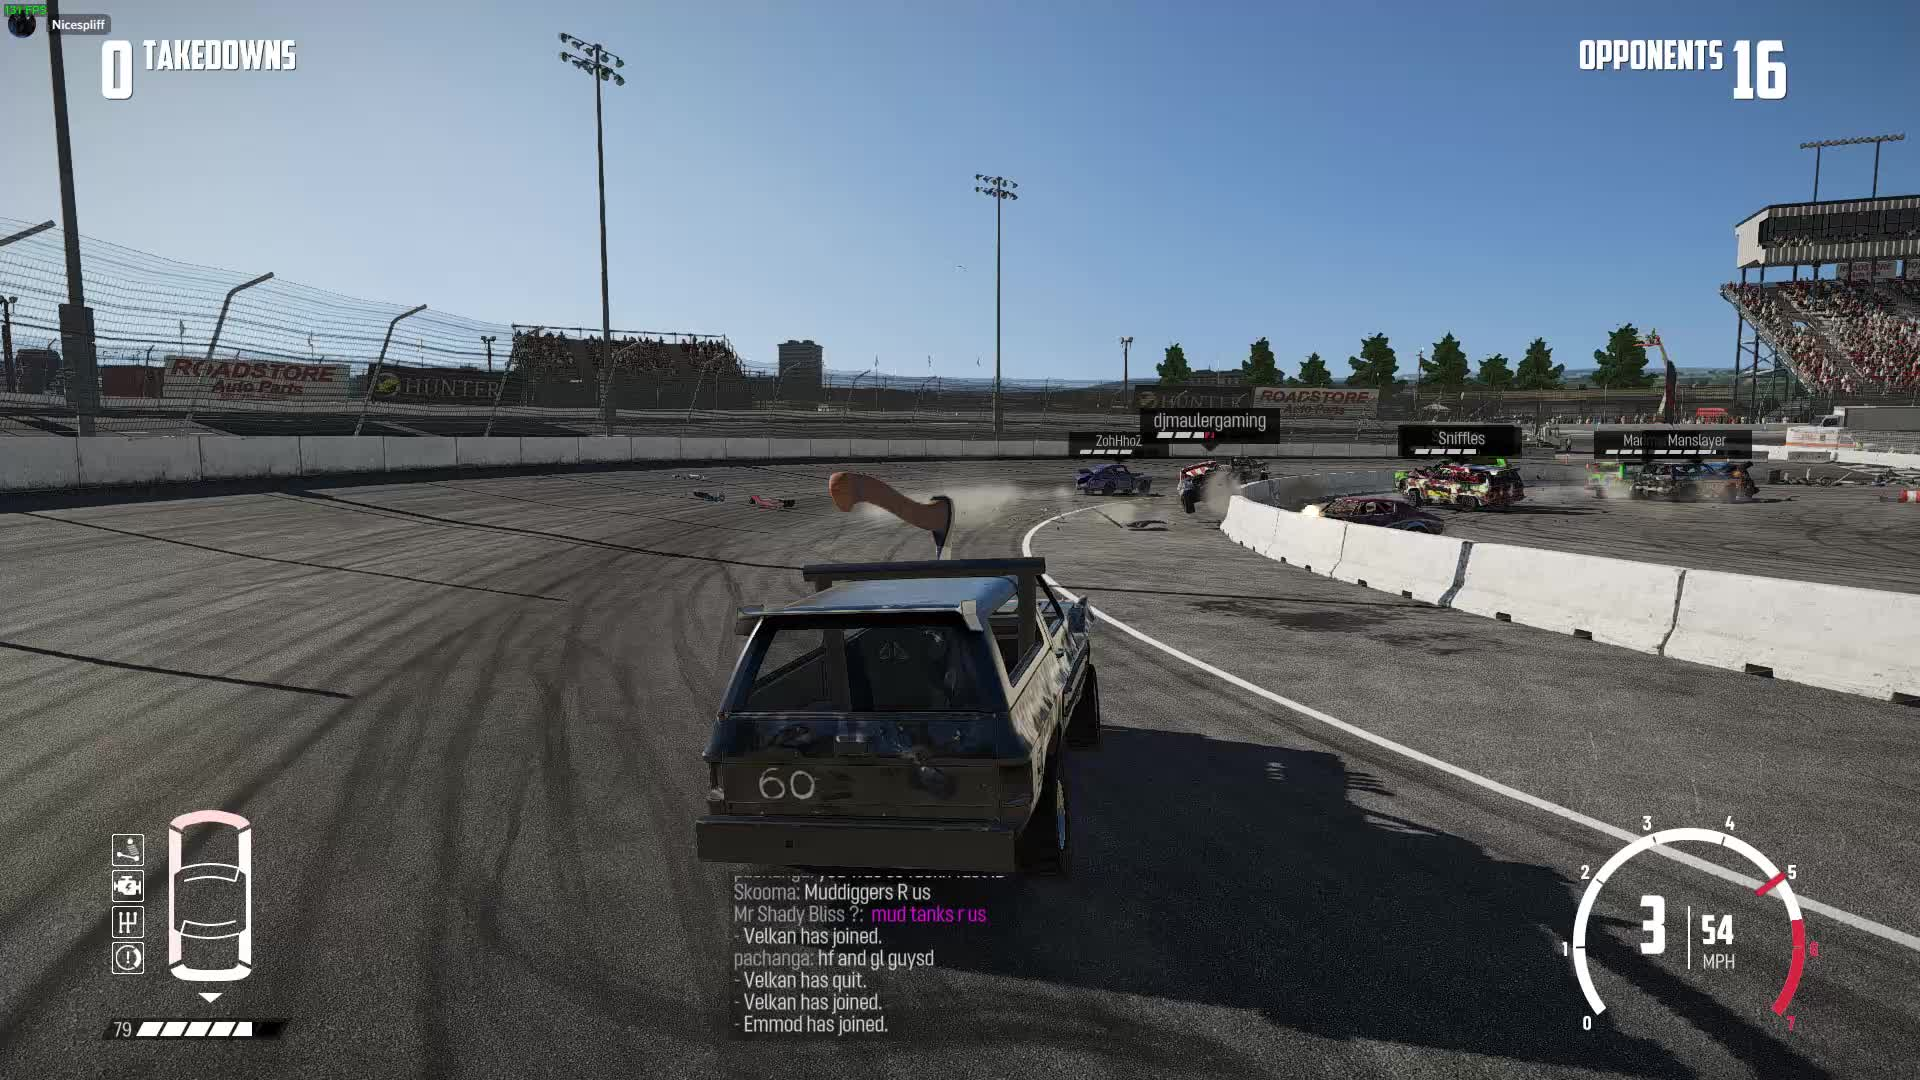 nextcargamewreckfest, This is one way to knock someone out in a derby GIFs